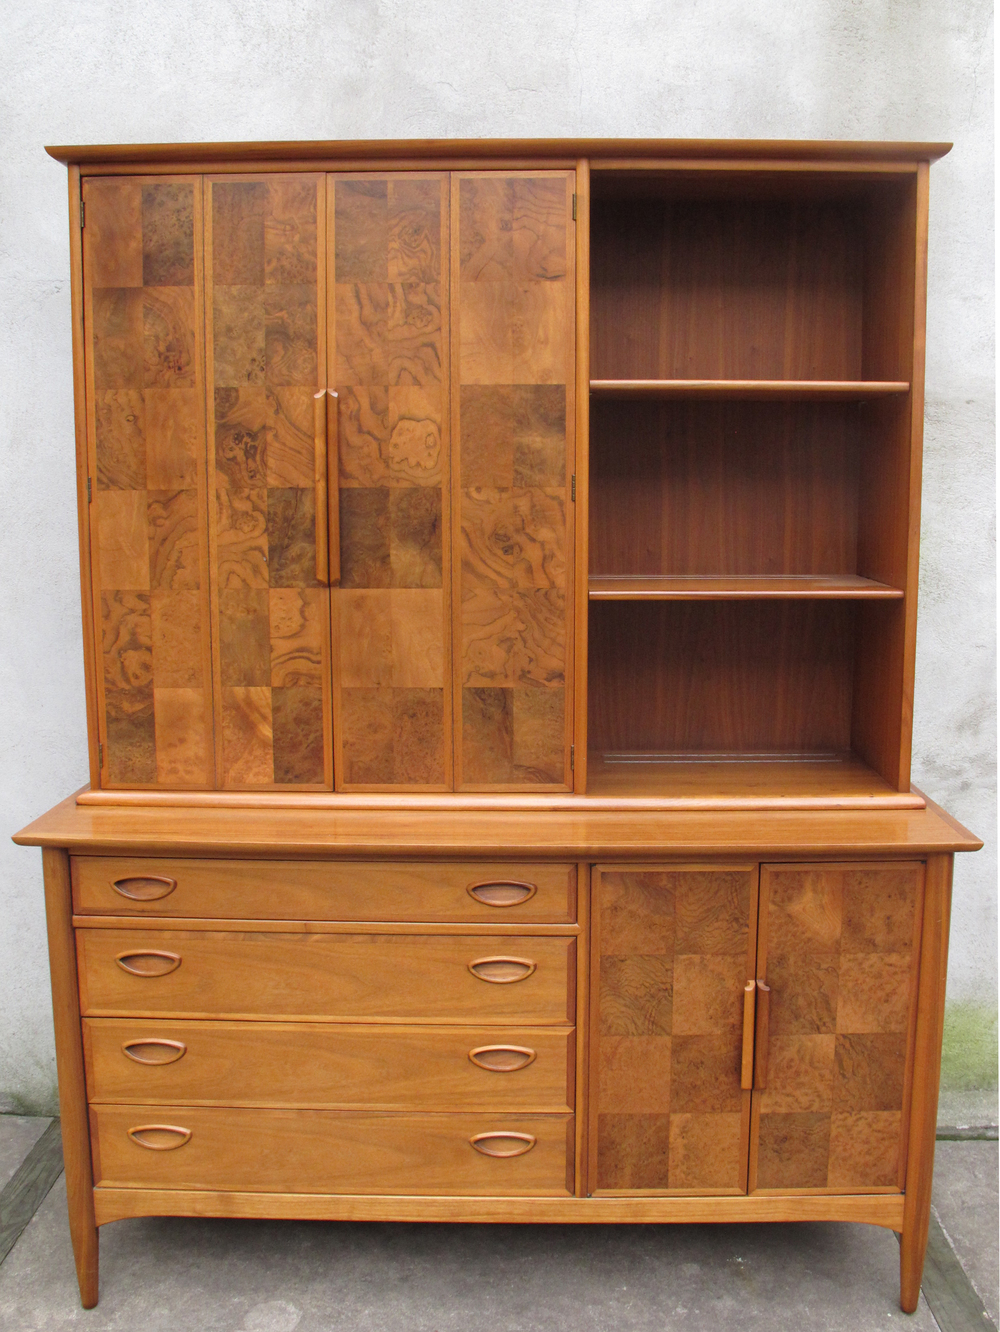 MID CENTURY CREDENZA CABINET BY HERITAGE